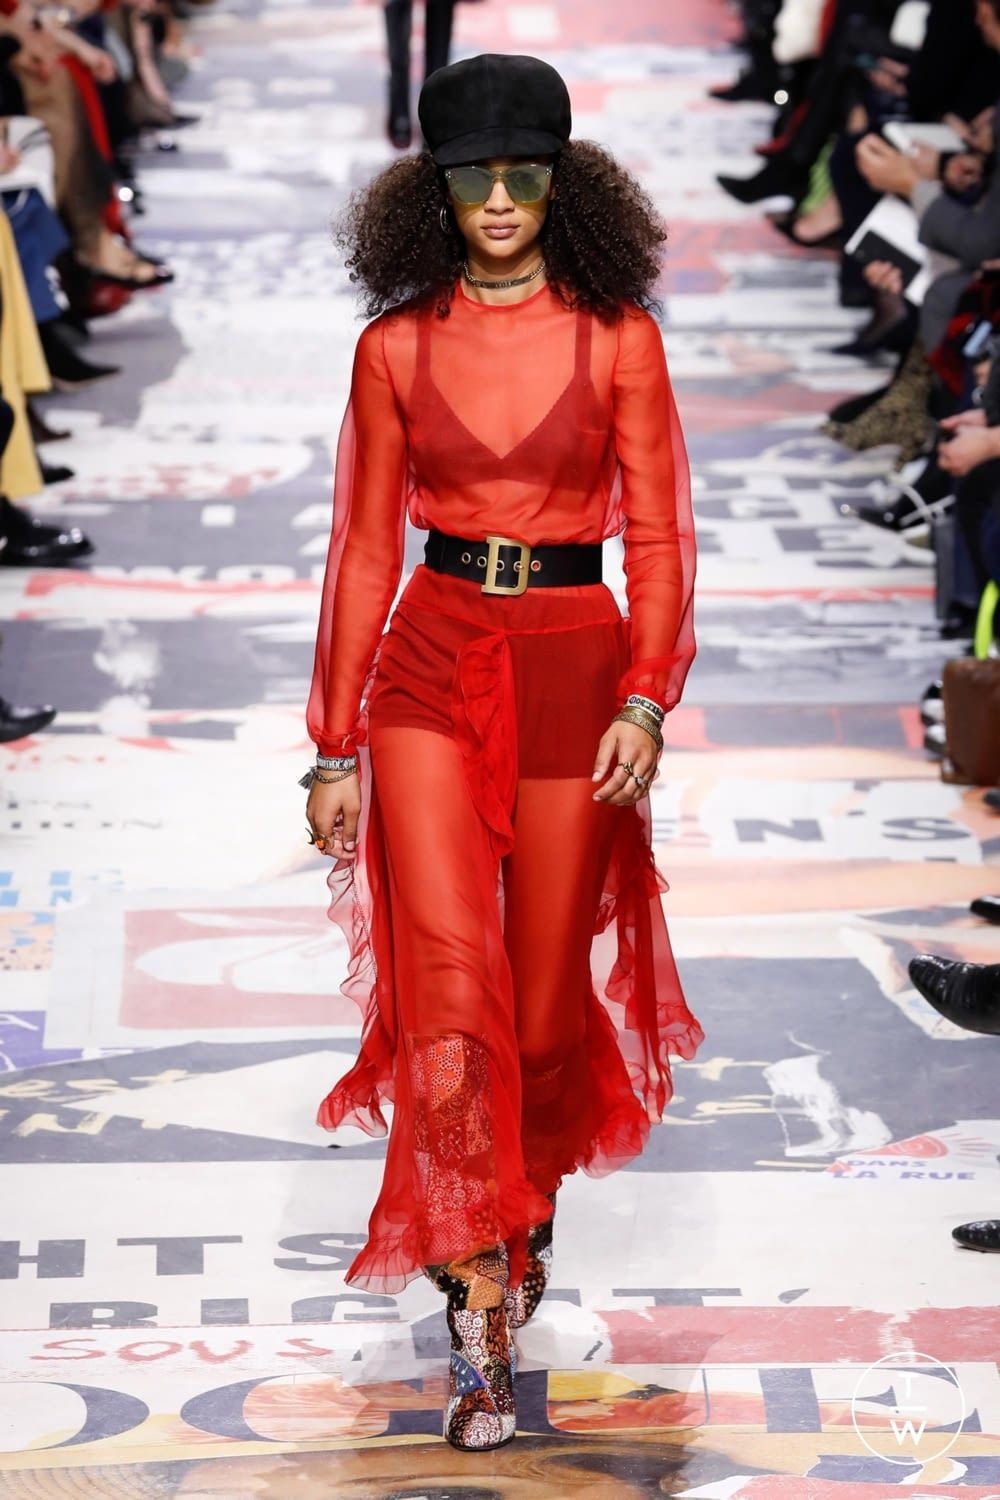 Pin on AW 2014/15 Trends